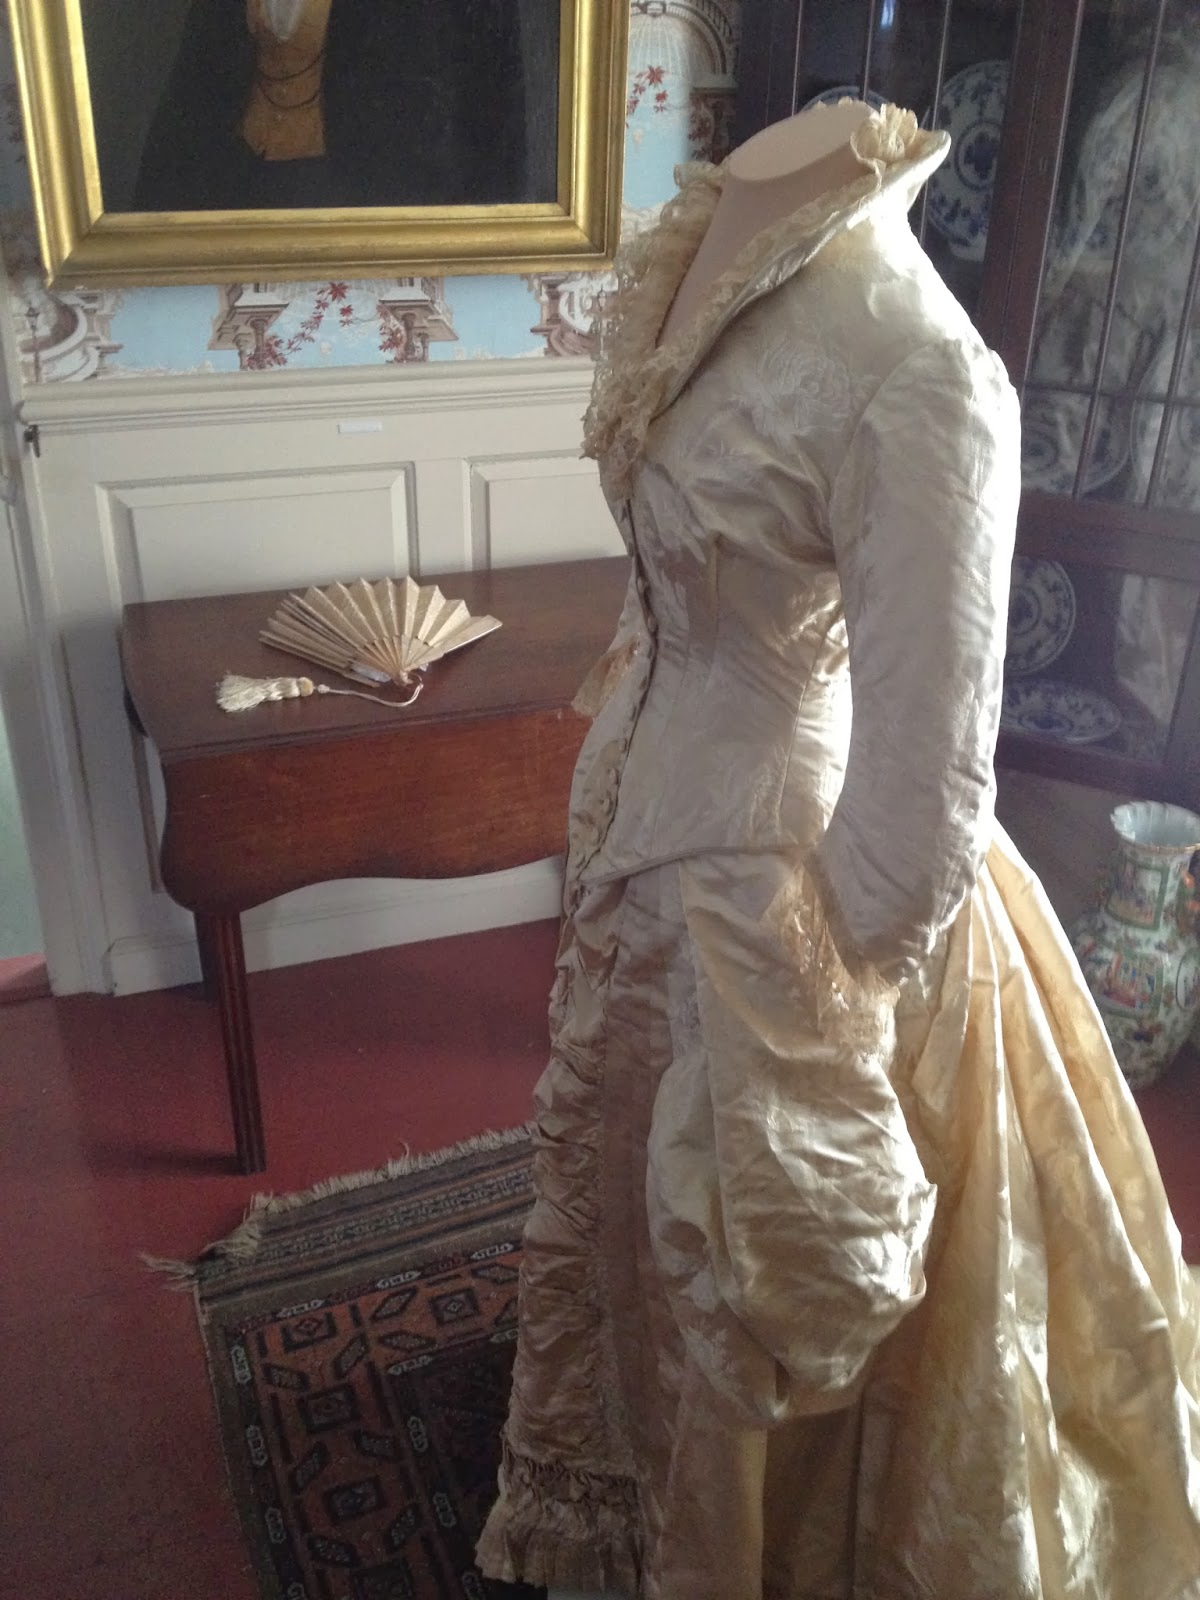 SilkDamask : In Situ: An 1881 Wedding Dress, Portsmouth, New Hampshire